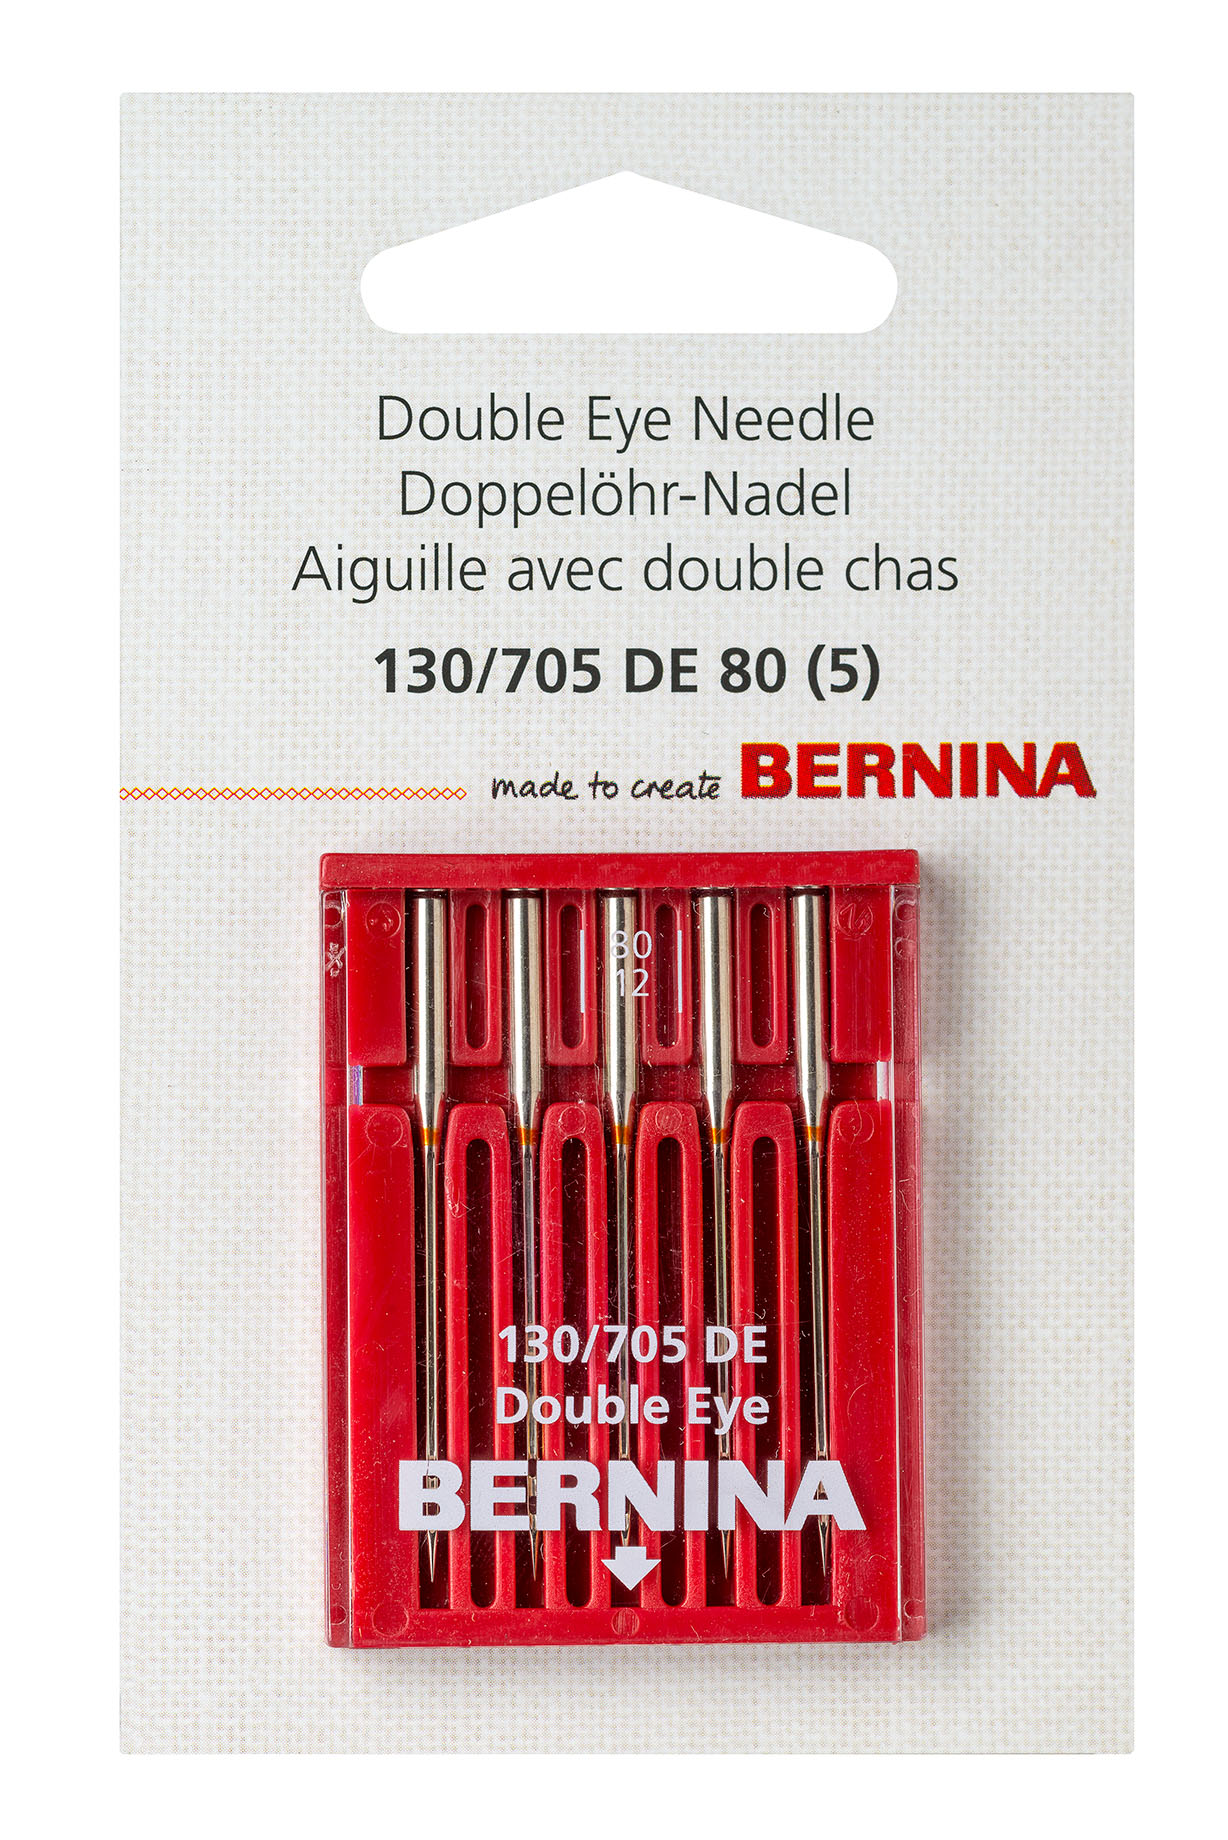 Double eye needle